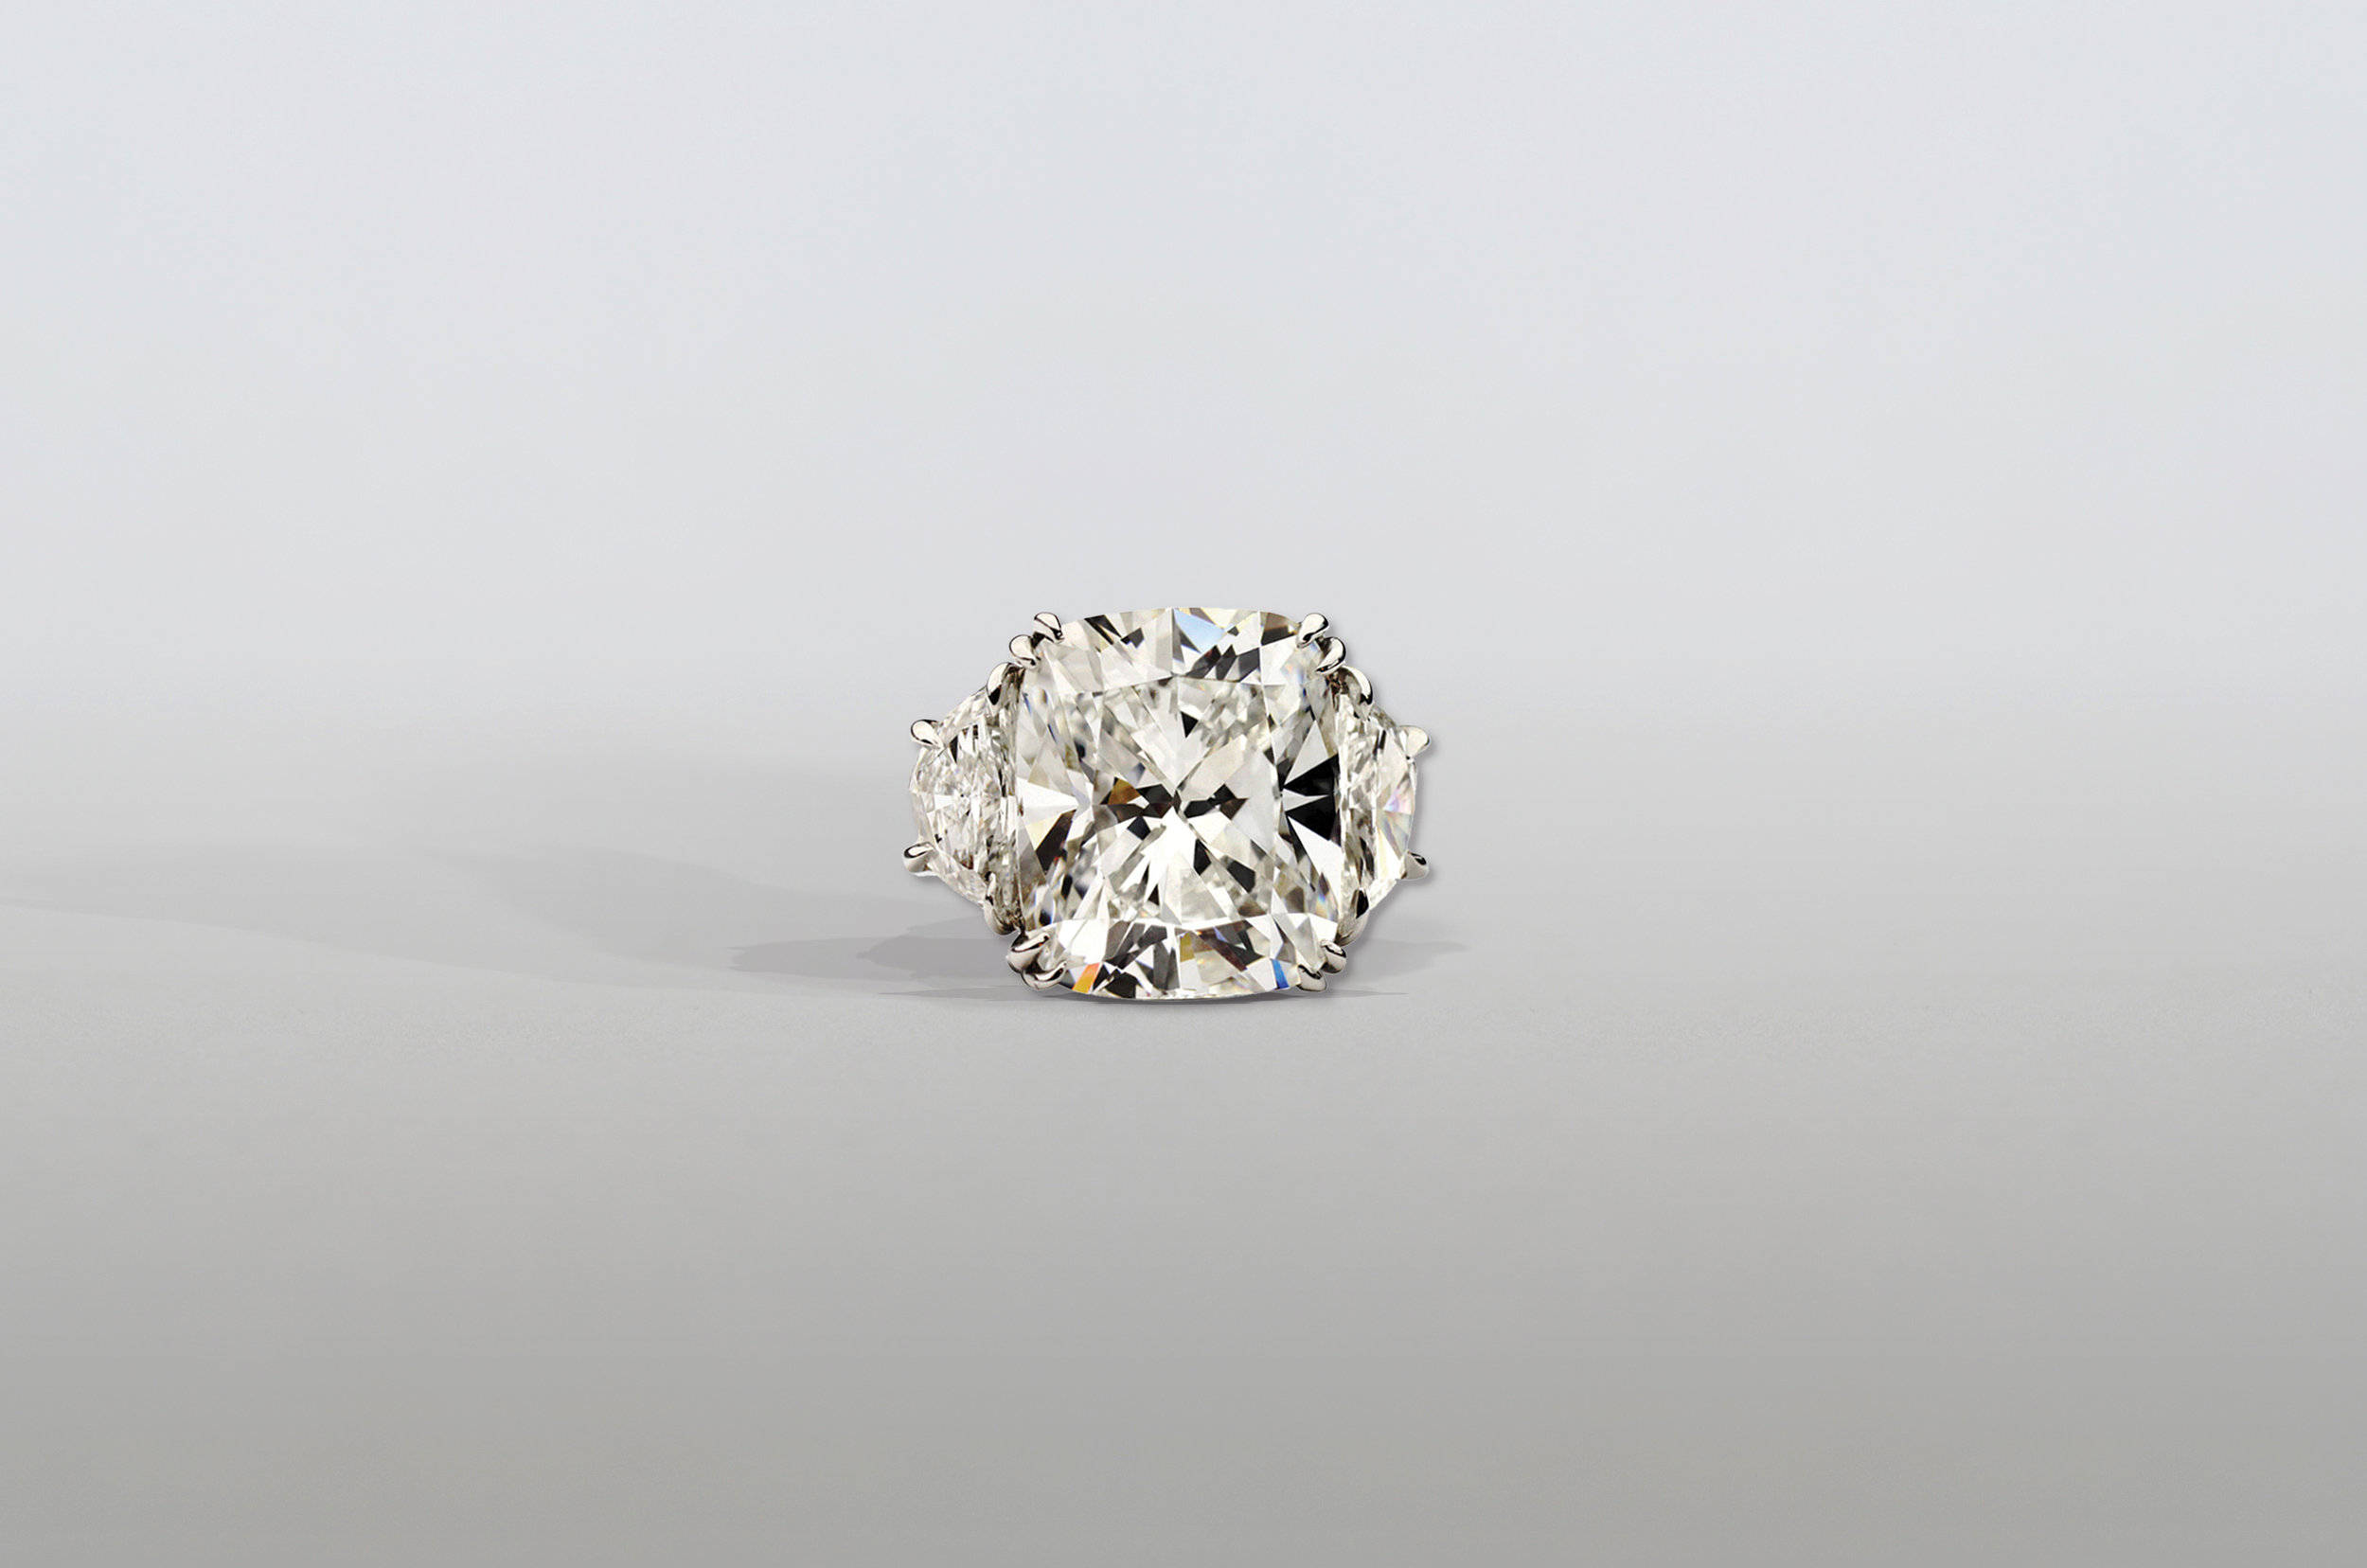 Large Diamond Ring.jpg